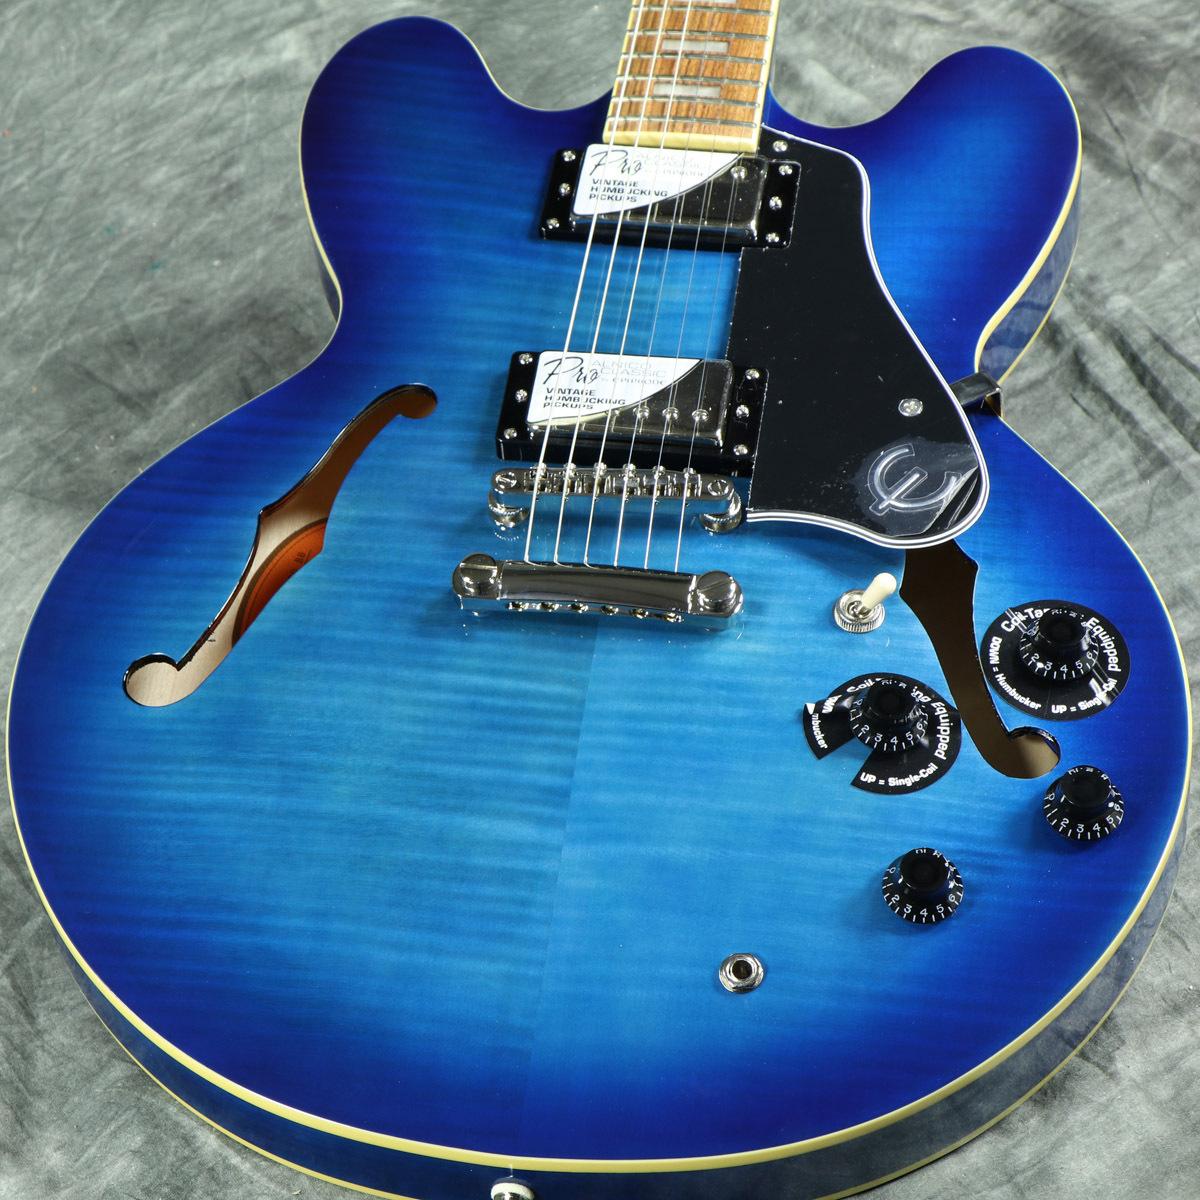 Epiphone Limited Edition ES-335 Pro Blueberry Burst 【WEBSHOP】